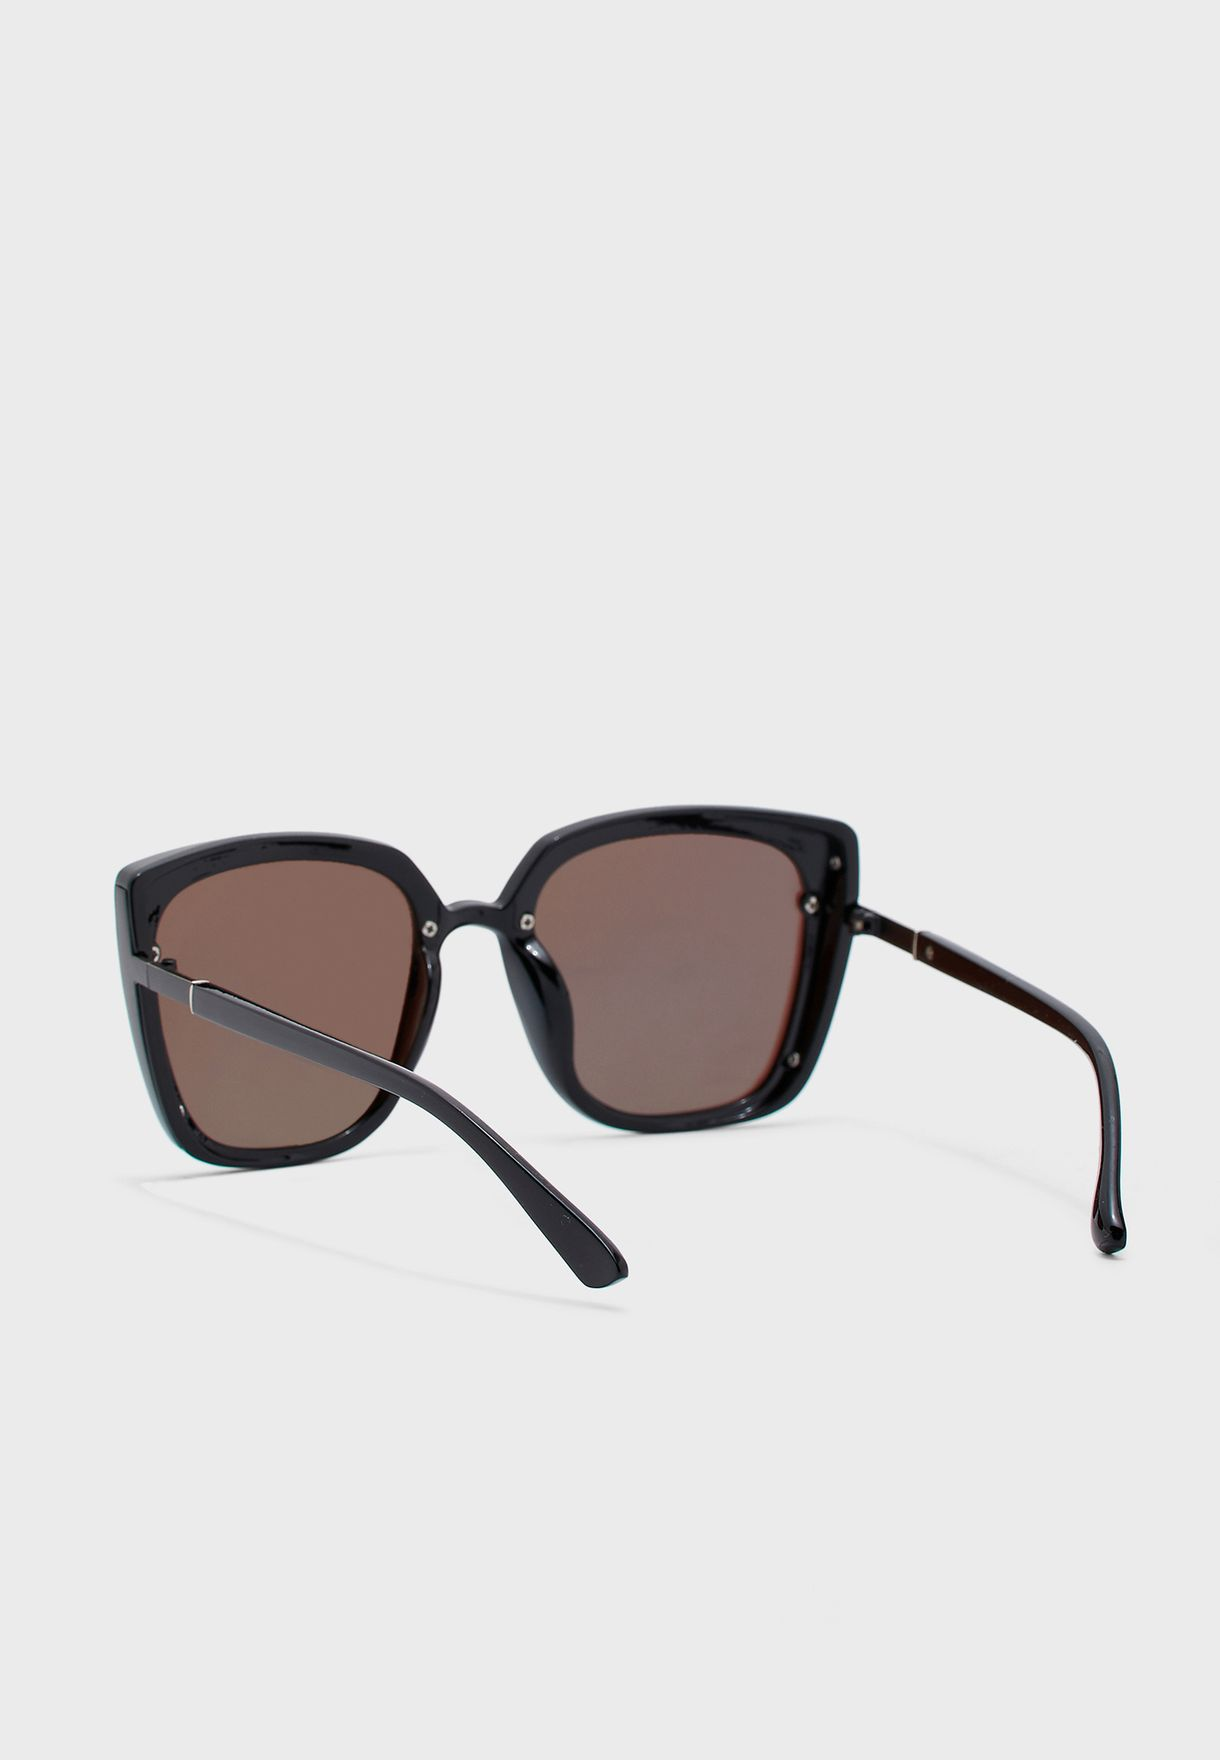 Mirrored lens Polarized Sunglasses